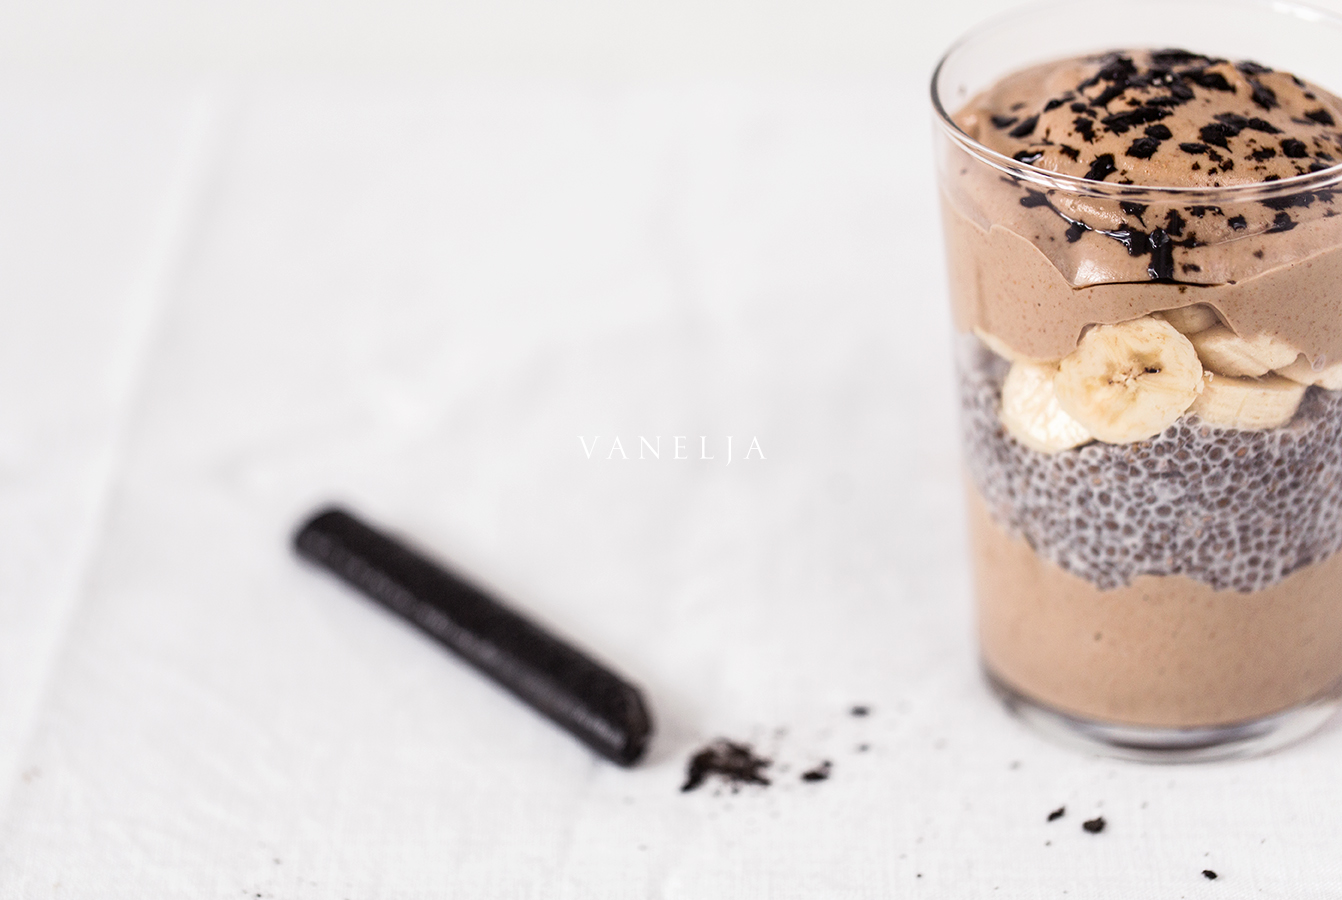 Licorice chocolate smoothie parfait